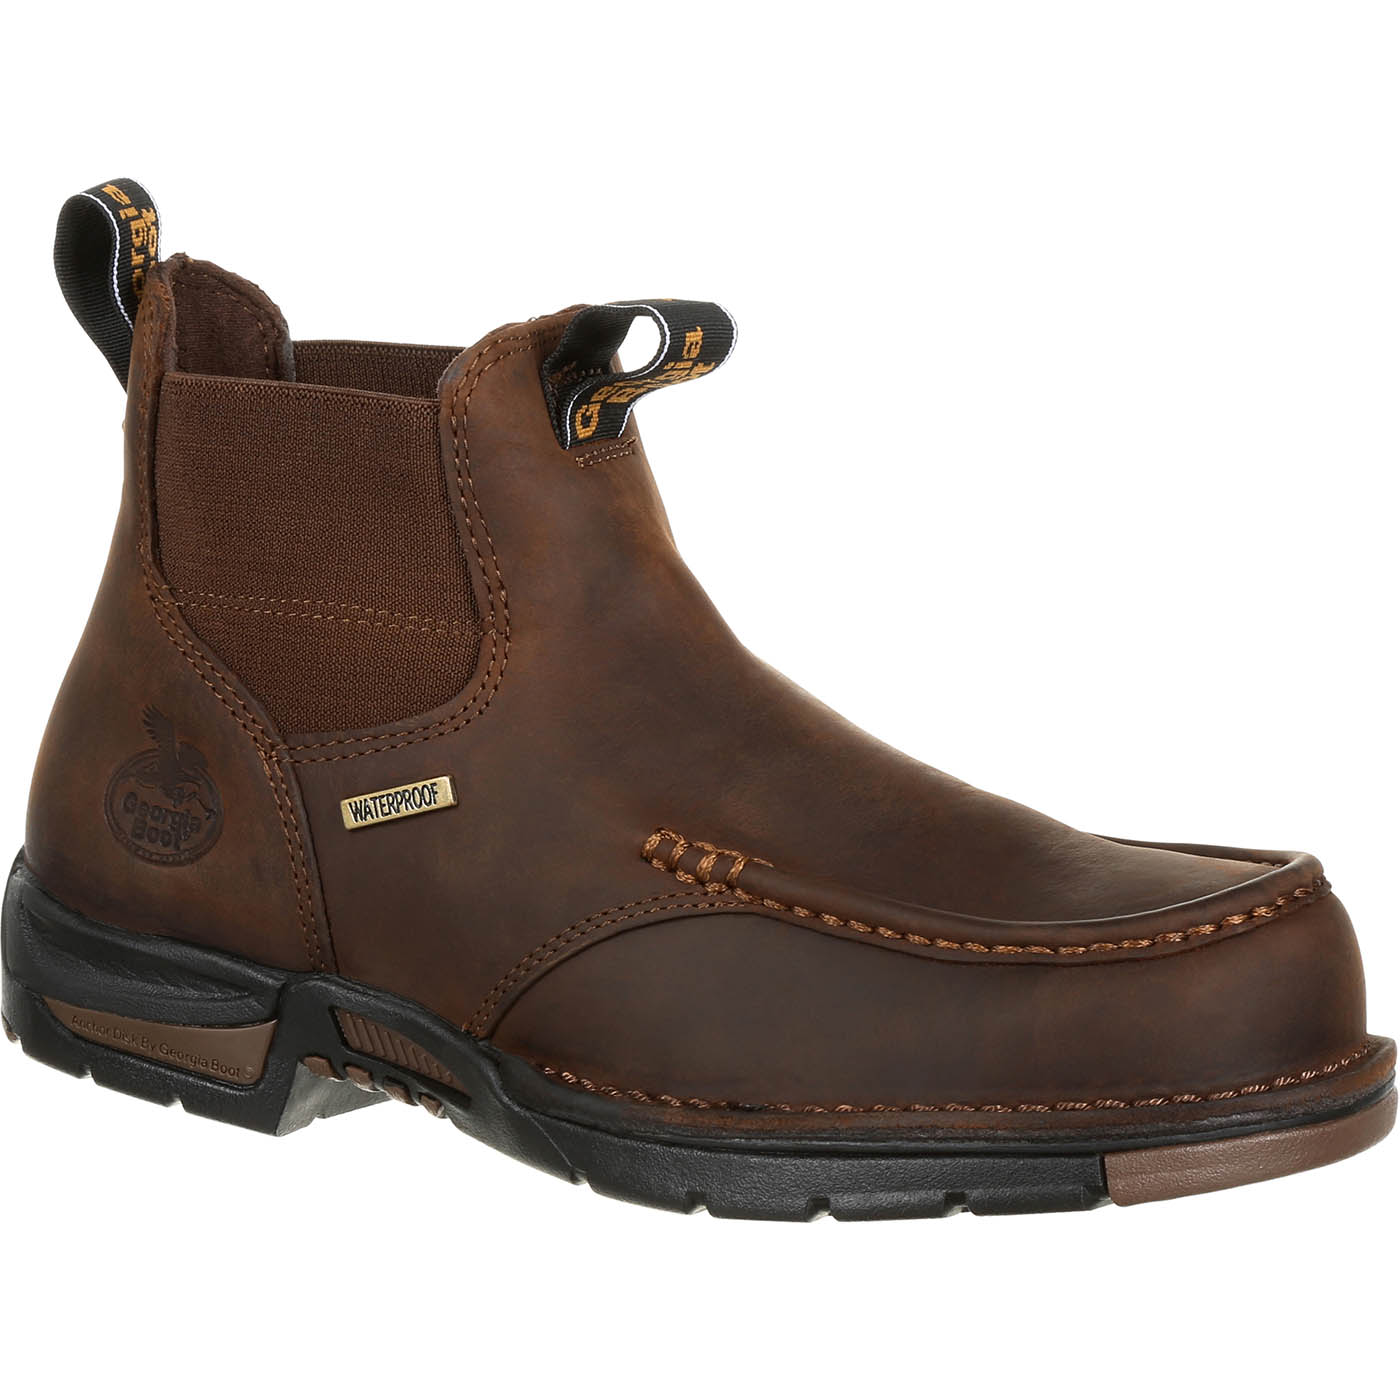 Mens Georgia Boots Work Boots